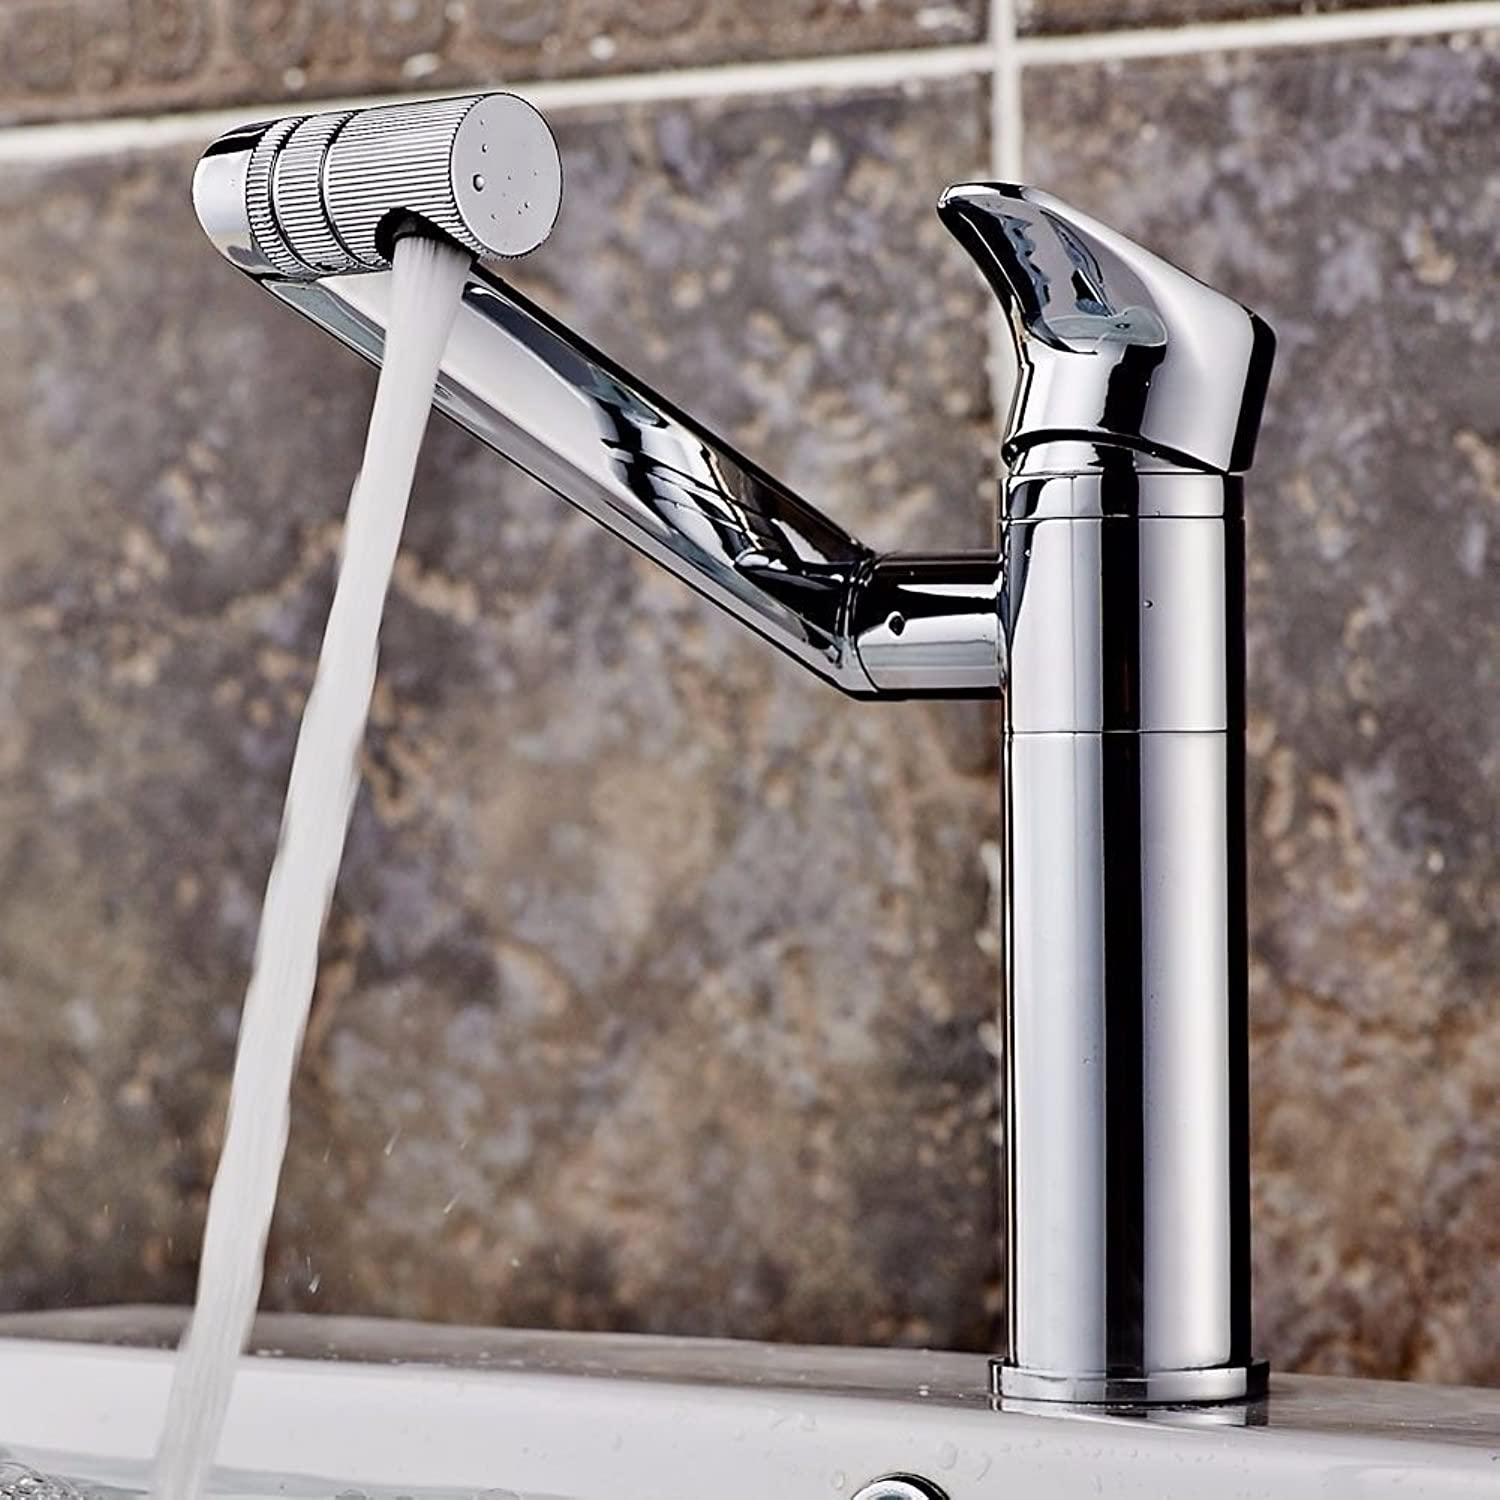 LHbox Basin Mixer Tap Bathroom Sink Faucet Basin cold water tap to redate the single hole basin mixer hand washing your face, standard)